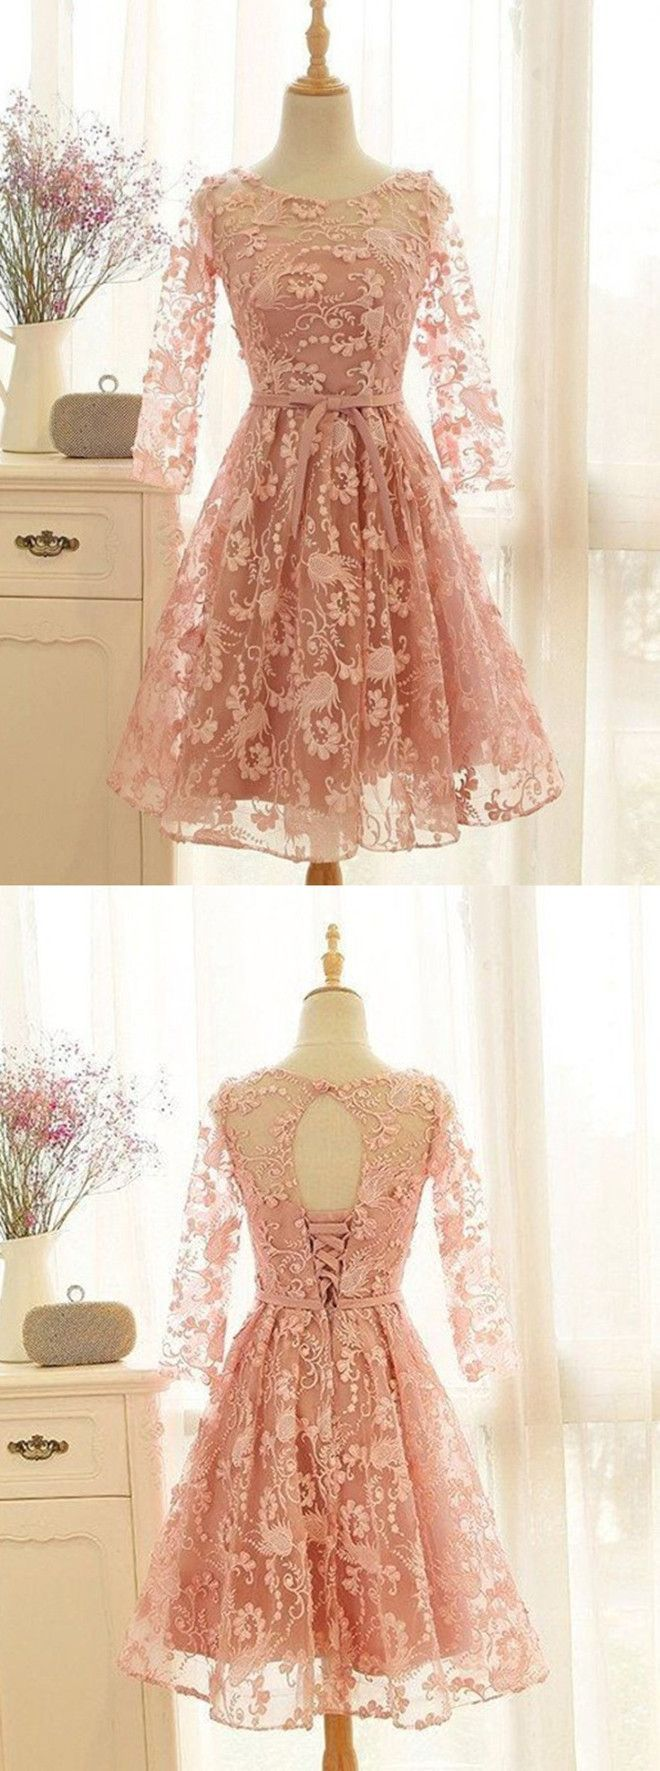 short homecoming dresses,lace homecoming dresses,homecoming dresses with sleeves